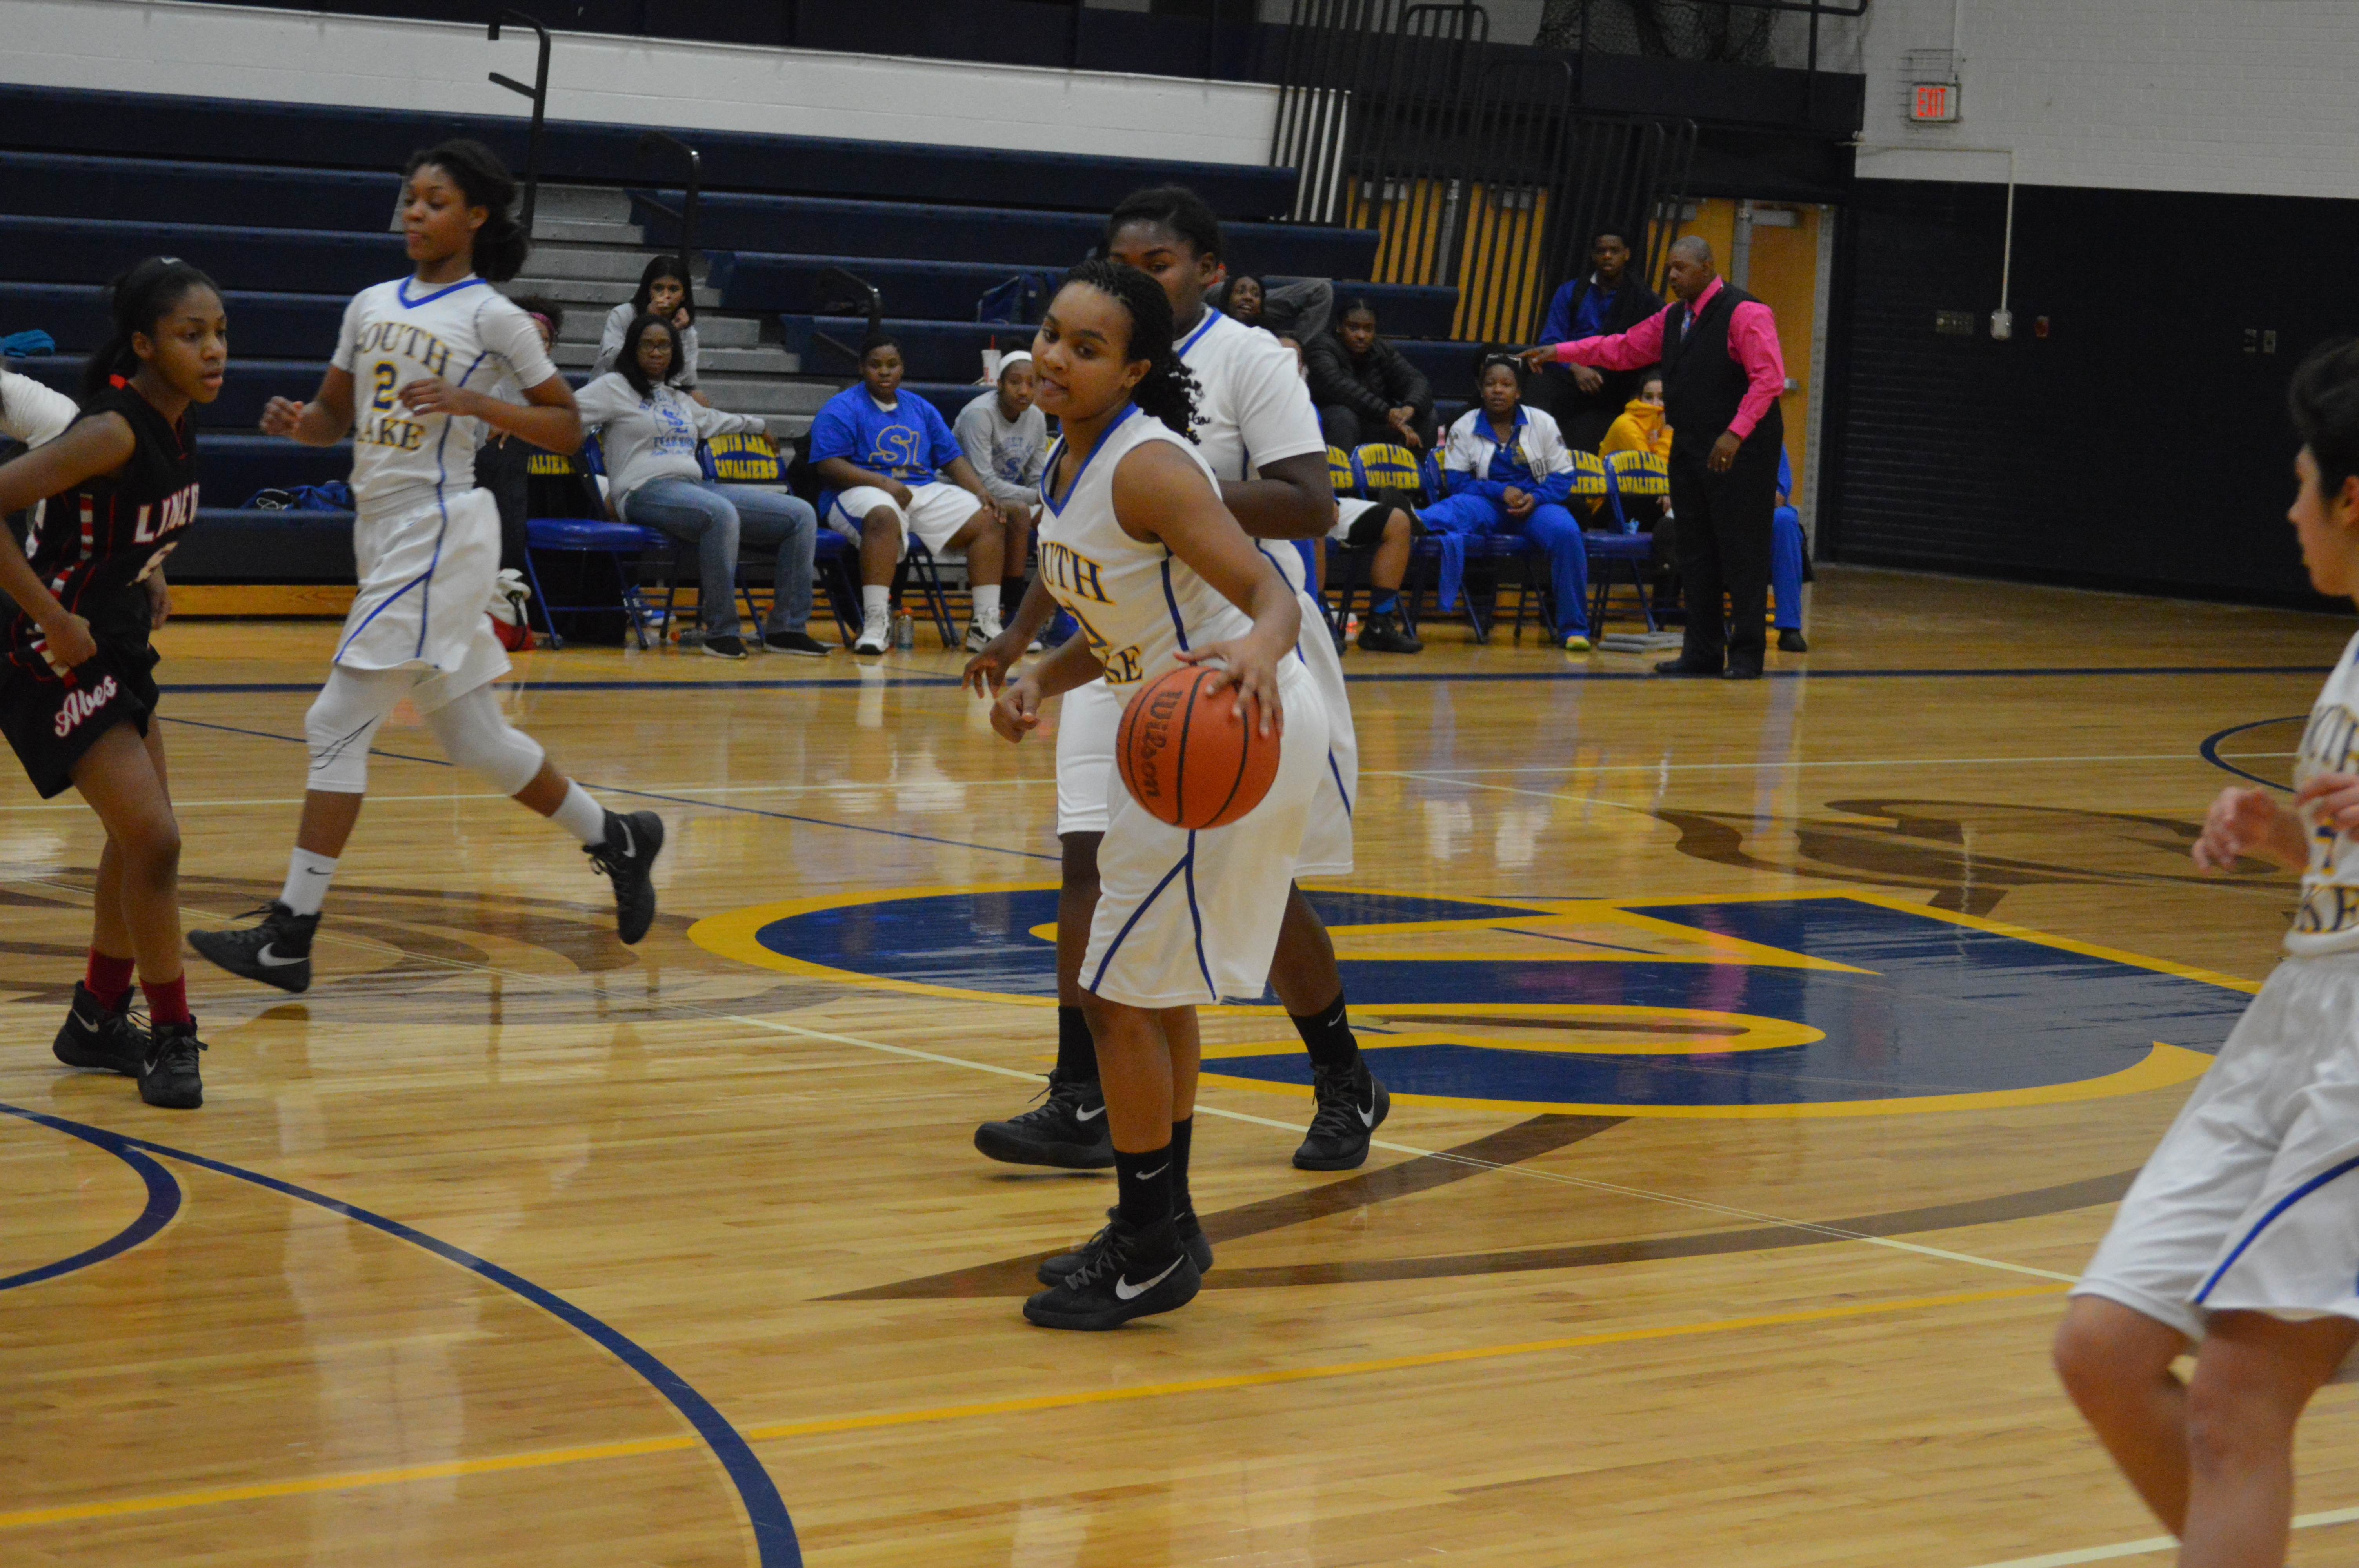 Taking her time, Khadijah Williams '16 runs down the clock against Lincoln.